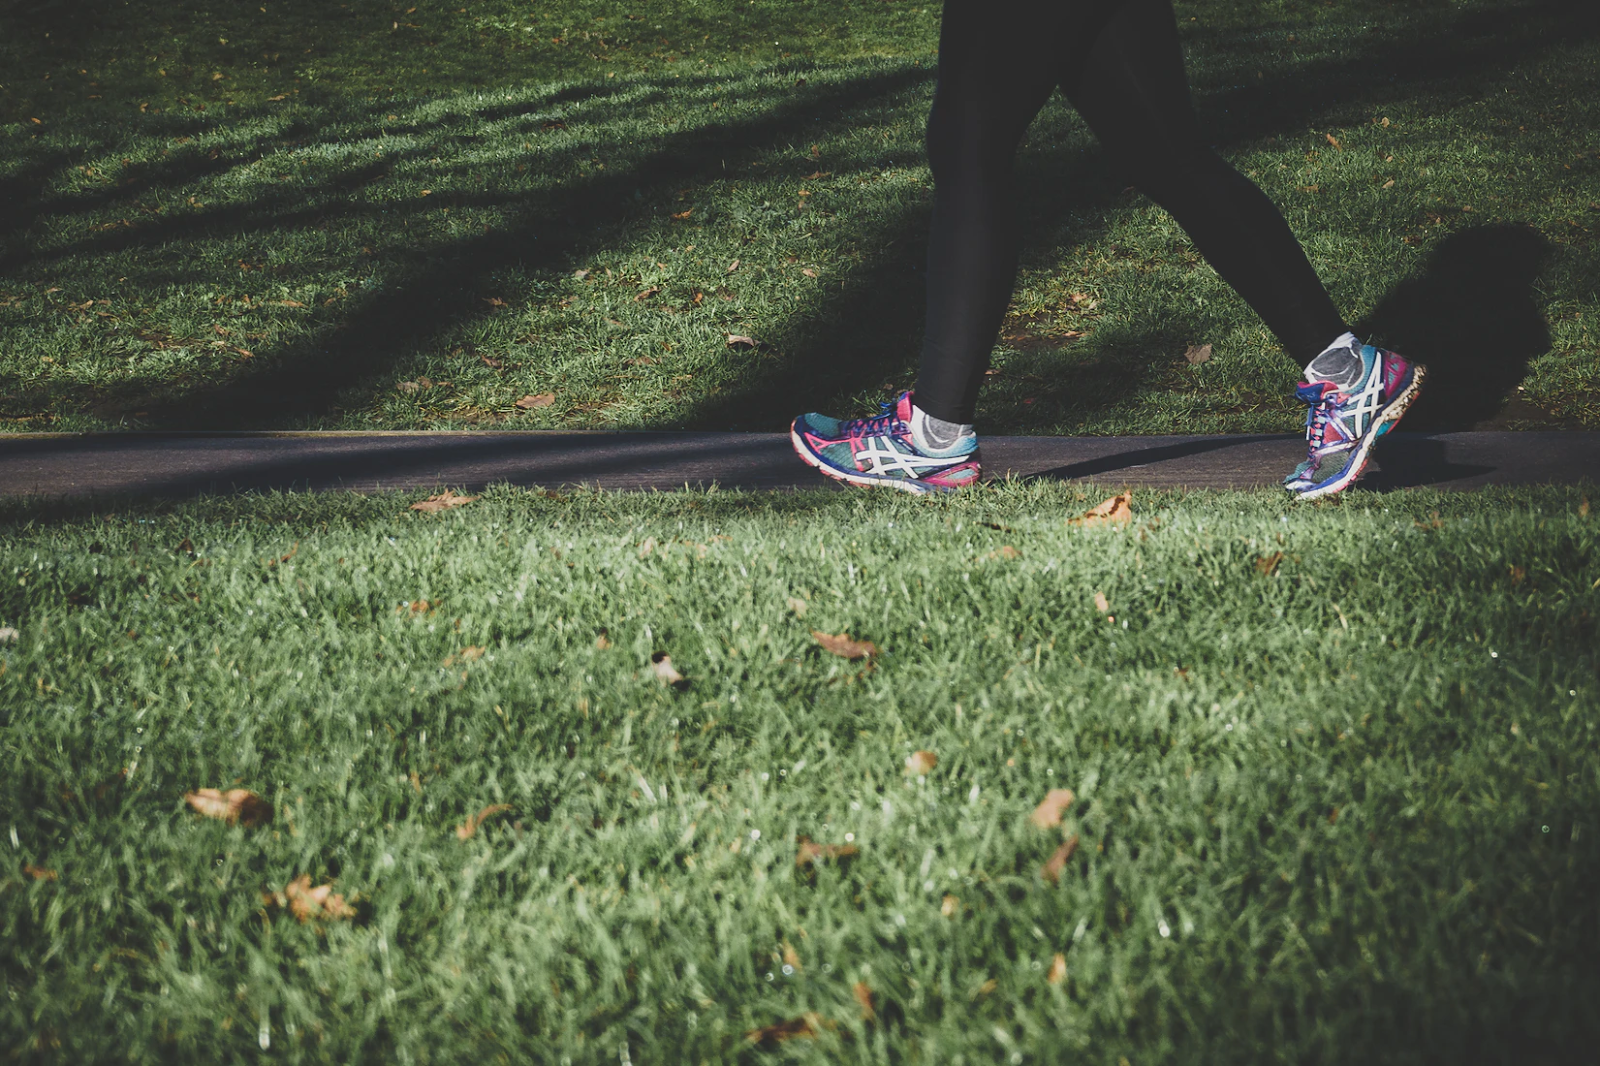 An image of someone's legs, either running or walking along a path in the middle of a wide expanse of grass.